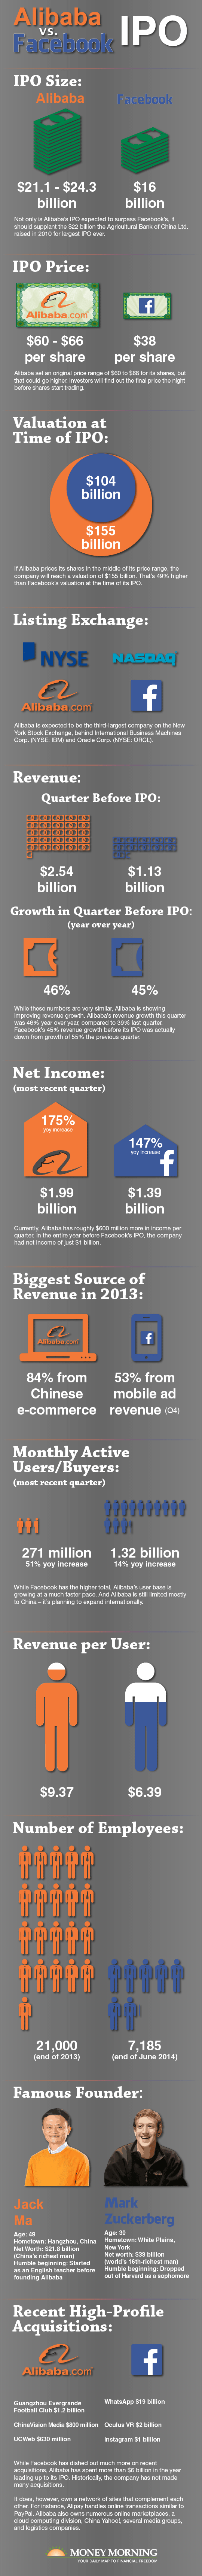 Alibaba IPO Launch vs Facebook IPO Launch